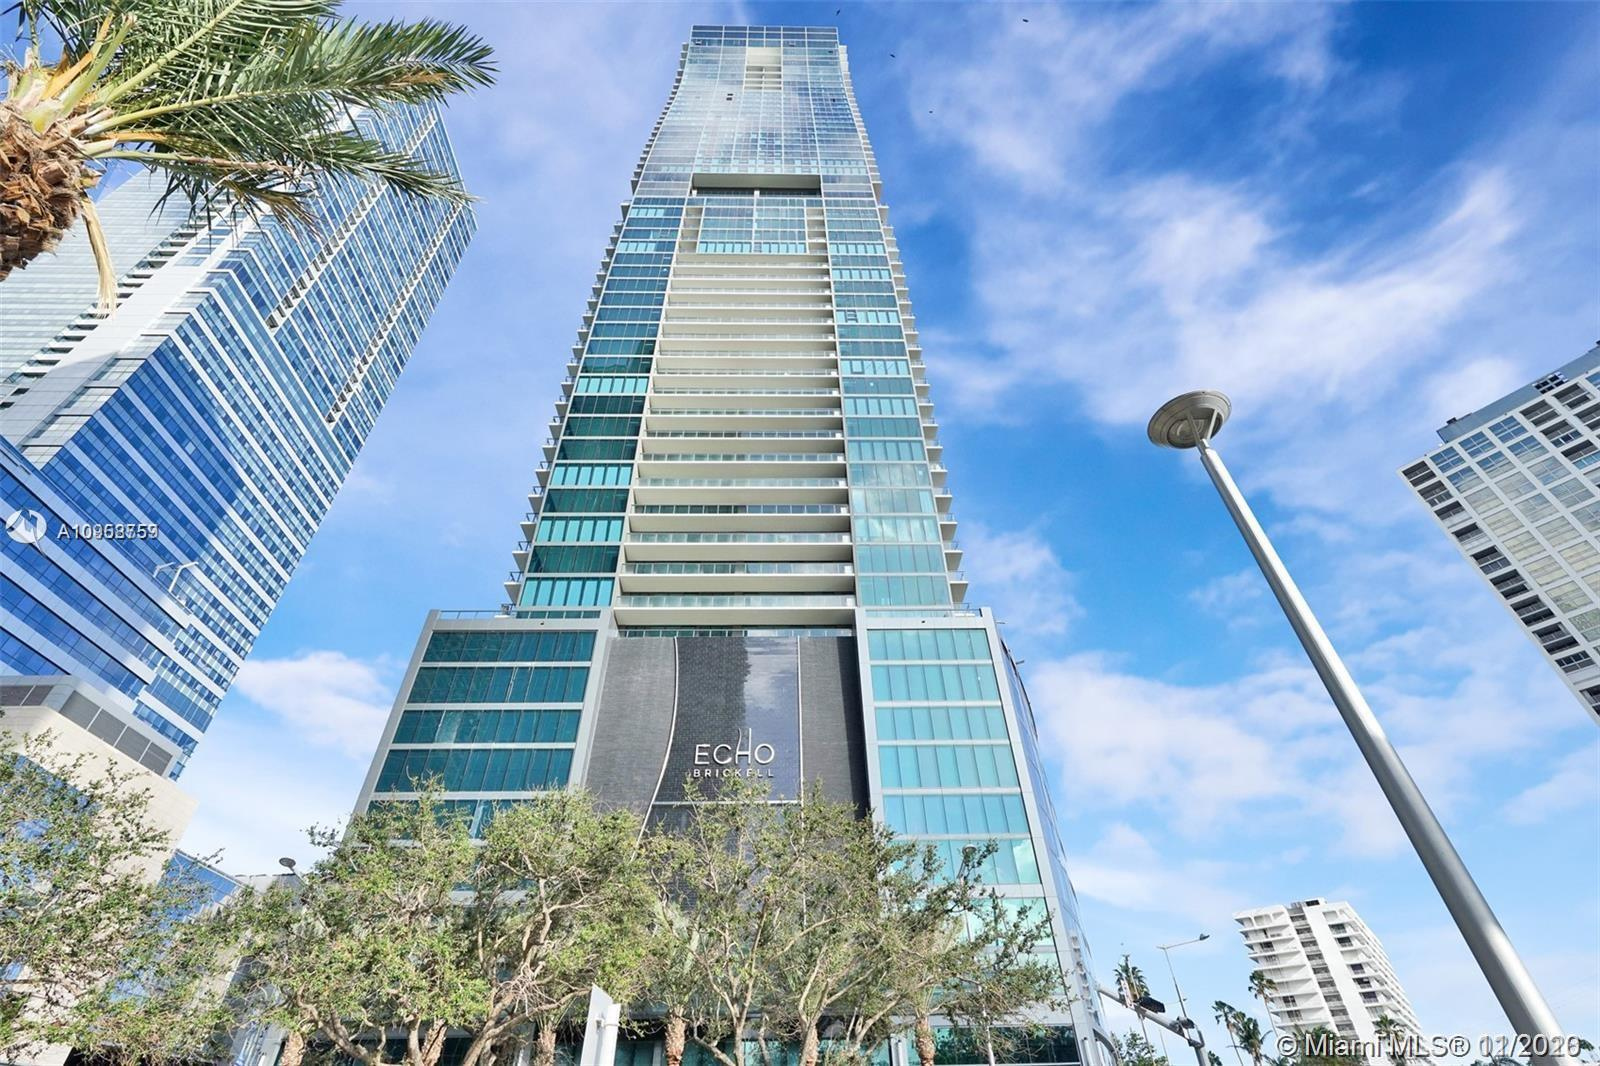 Brand New , Never lived in 1 bedroom 1 1/2 bath unit at Echo Brickell, The most exclusive and boutiq